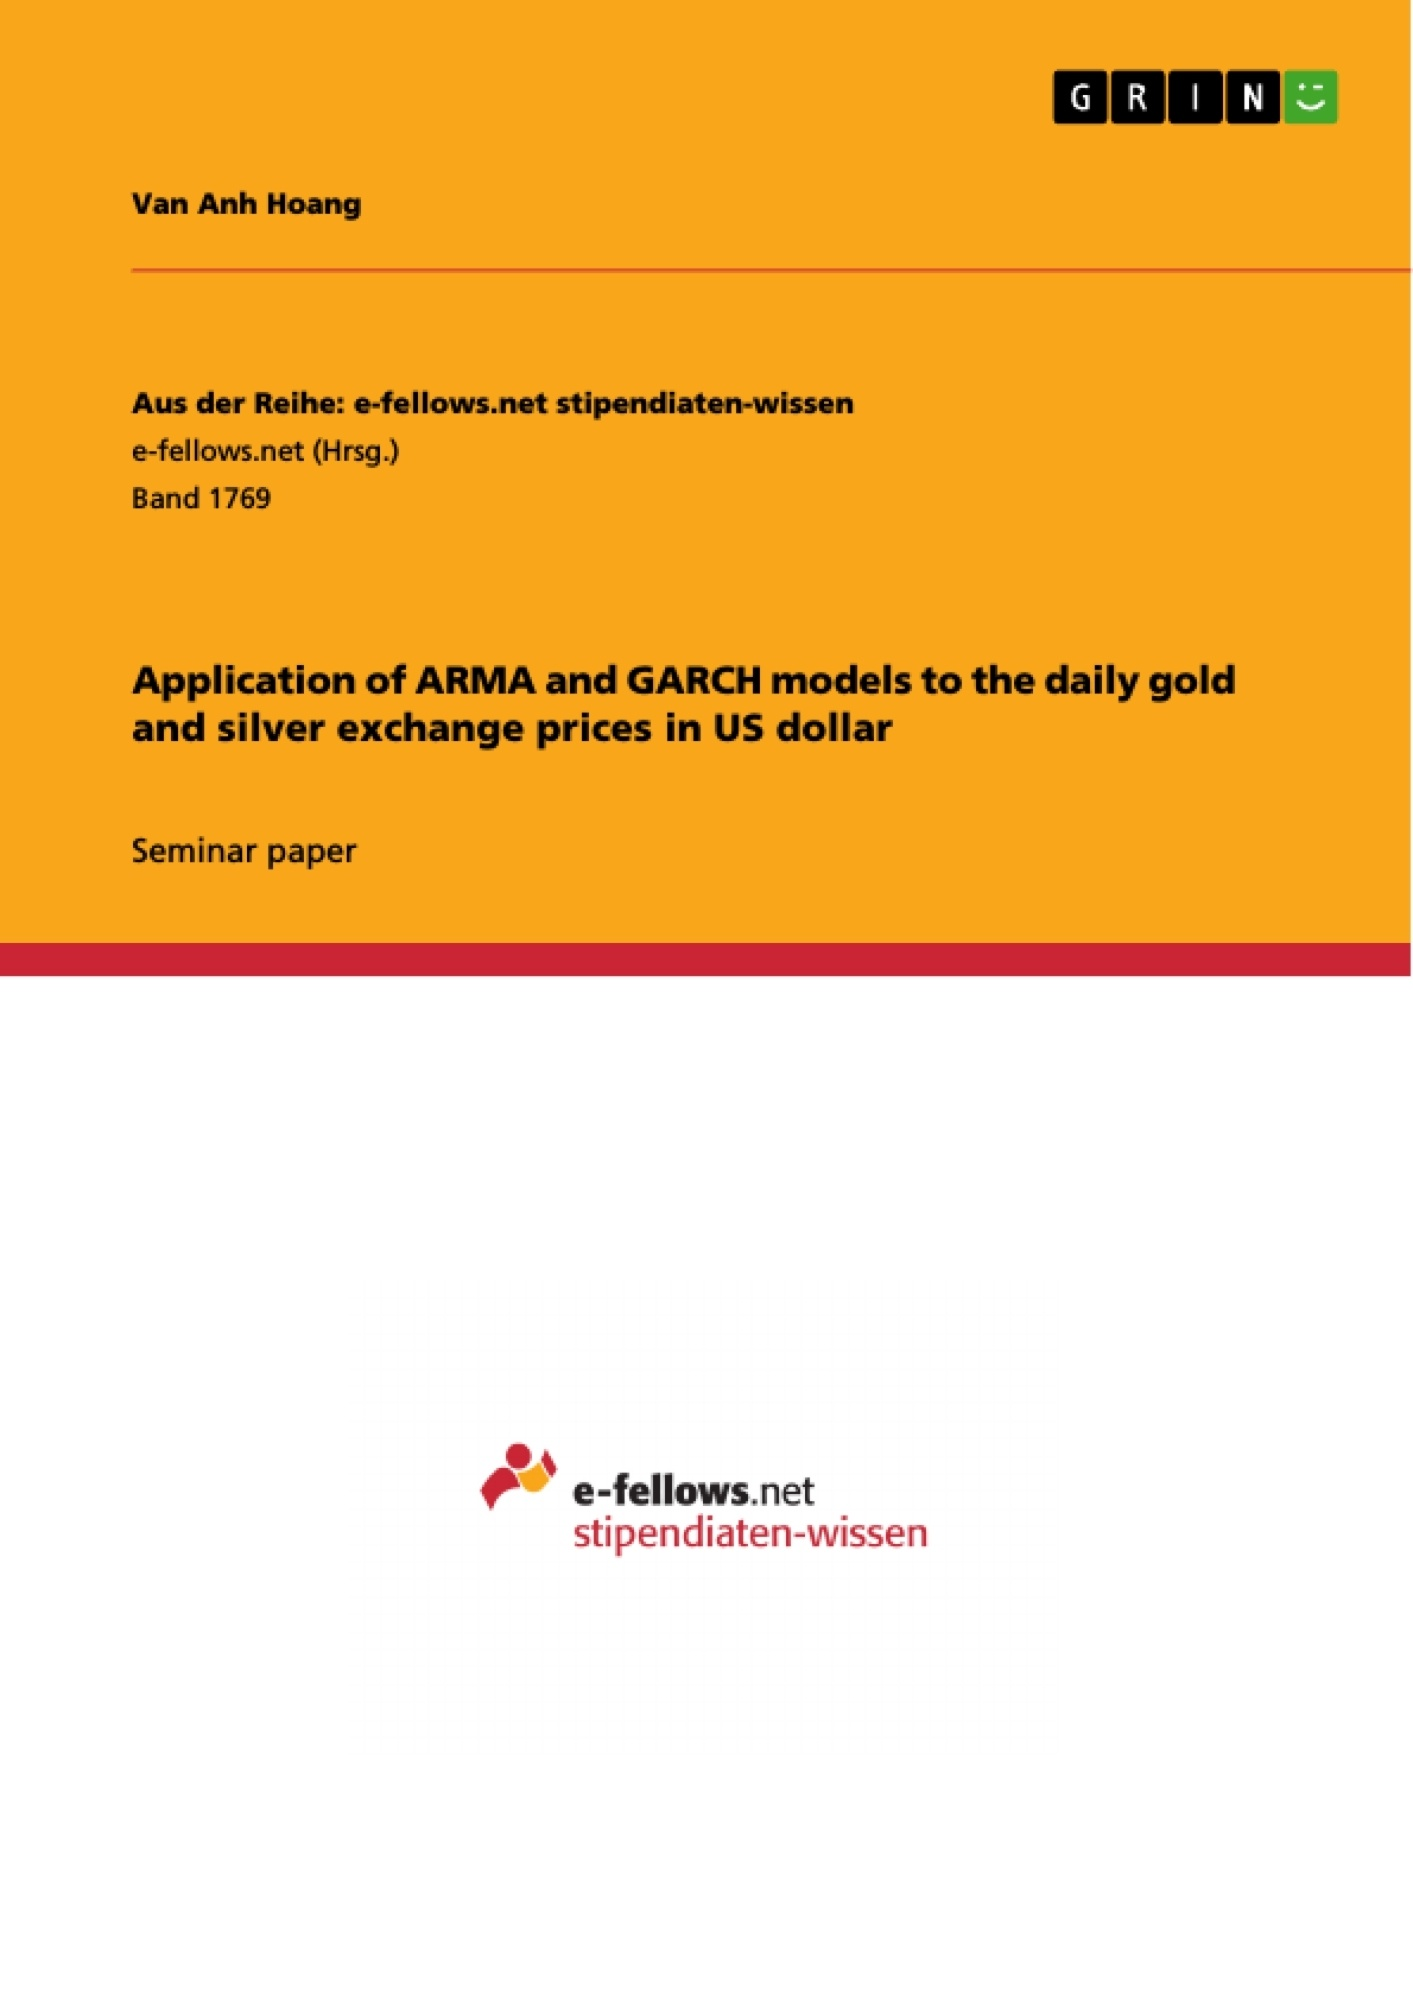 Title: Application of ARMA and GARCH models to the daily gold and silver exchange prices in US dollar